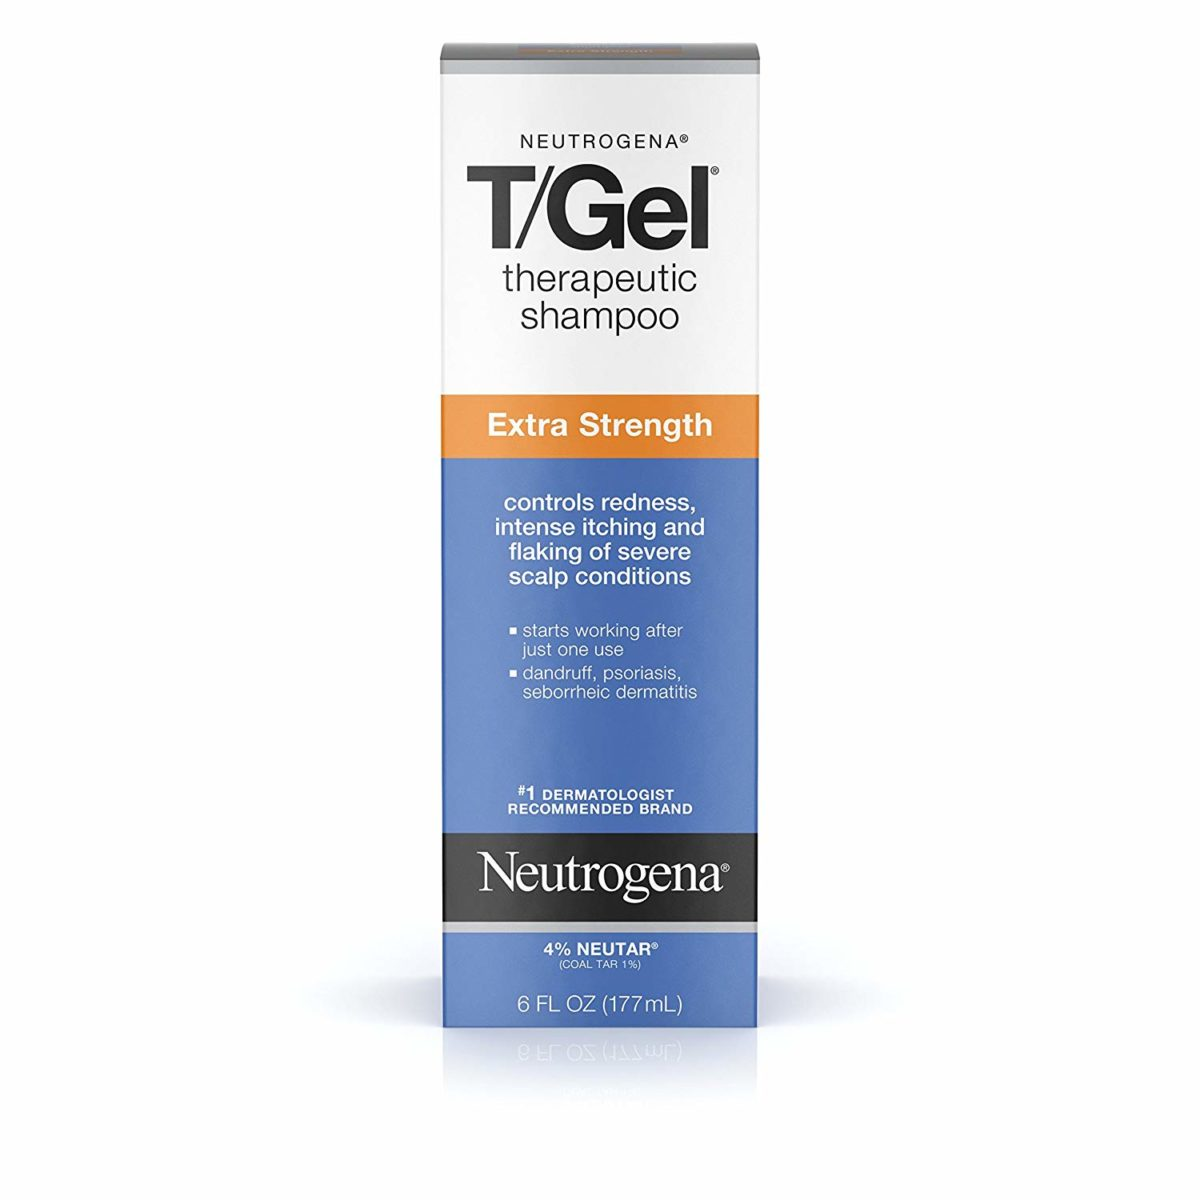 Neutrogena TGel Therapeutic Shampoo Extra Strength